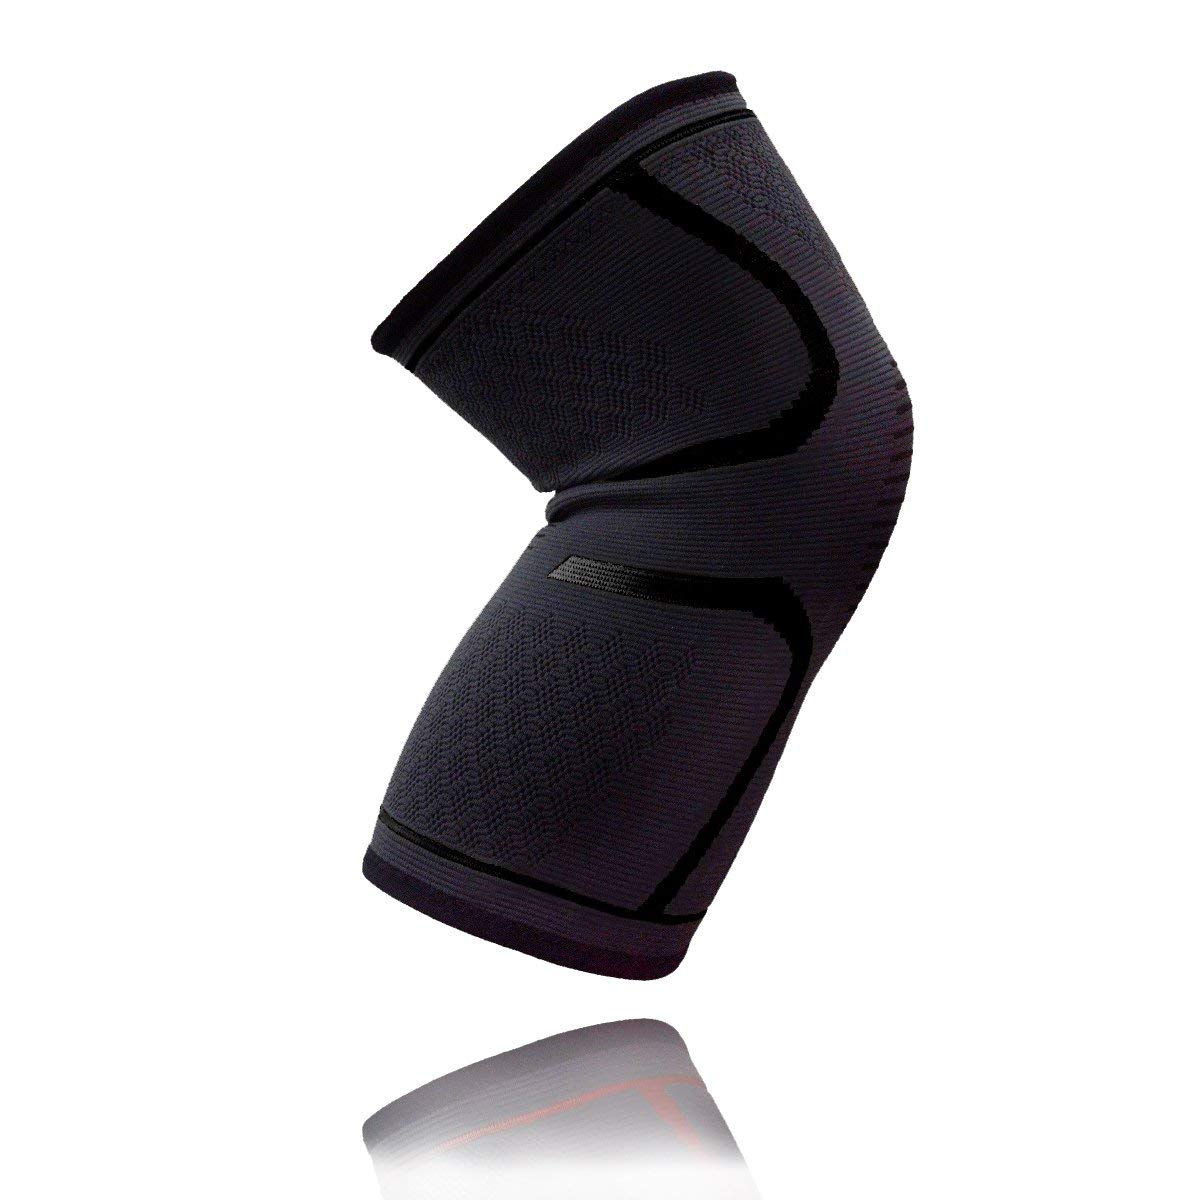 Despot_ak Knee Brace Compression Sleeve (1 Pair) - Best Knee Brace for Meniscus Knee Brace for Meniscus Tear, Arthritis, Quick Recovery etc. Sleeve Support for Running, Jogging, Sports, basketball。